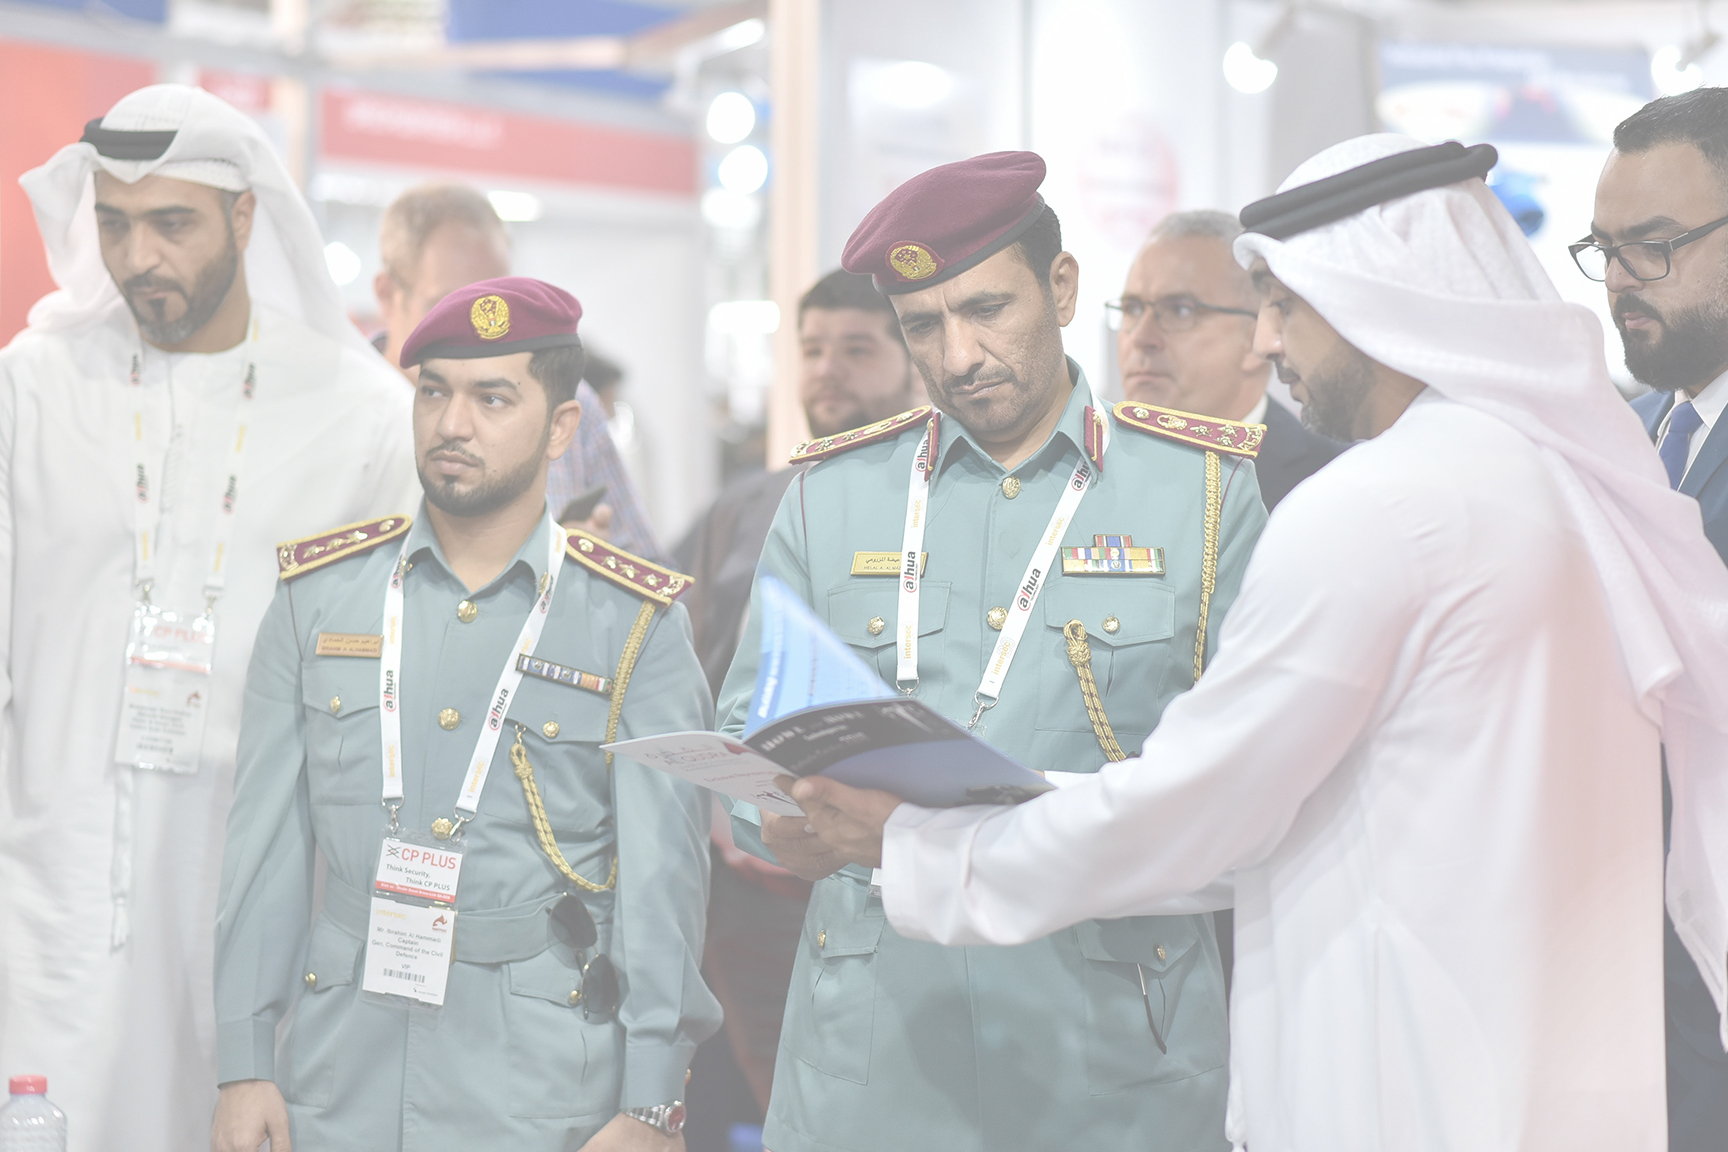 His Highness Sheikh Mansoor bin Mohammed bin Rashid Al Maktoum opens 20th edition of Intersec